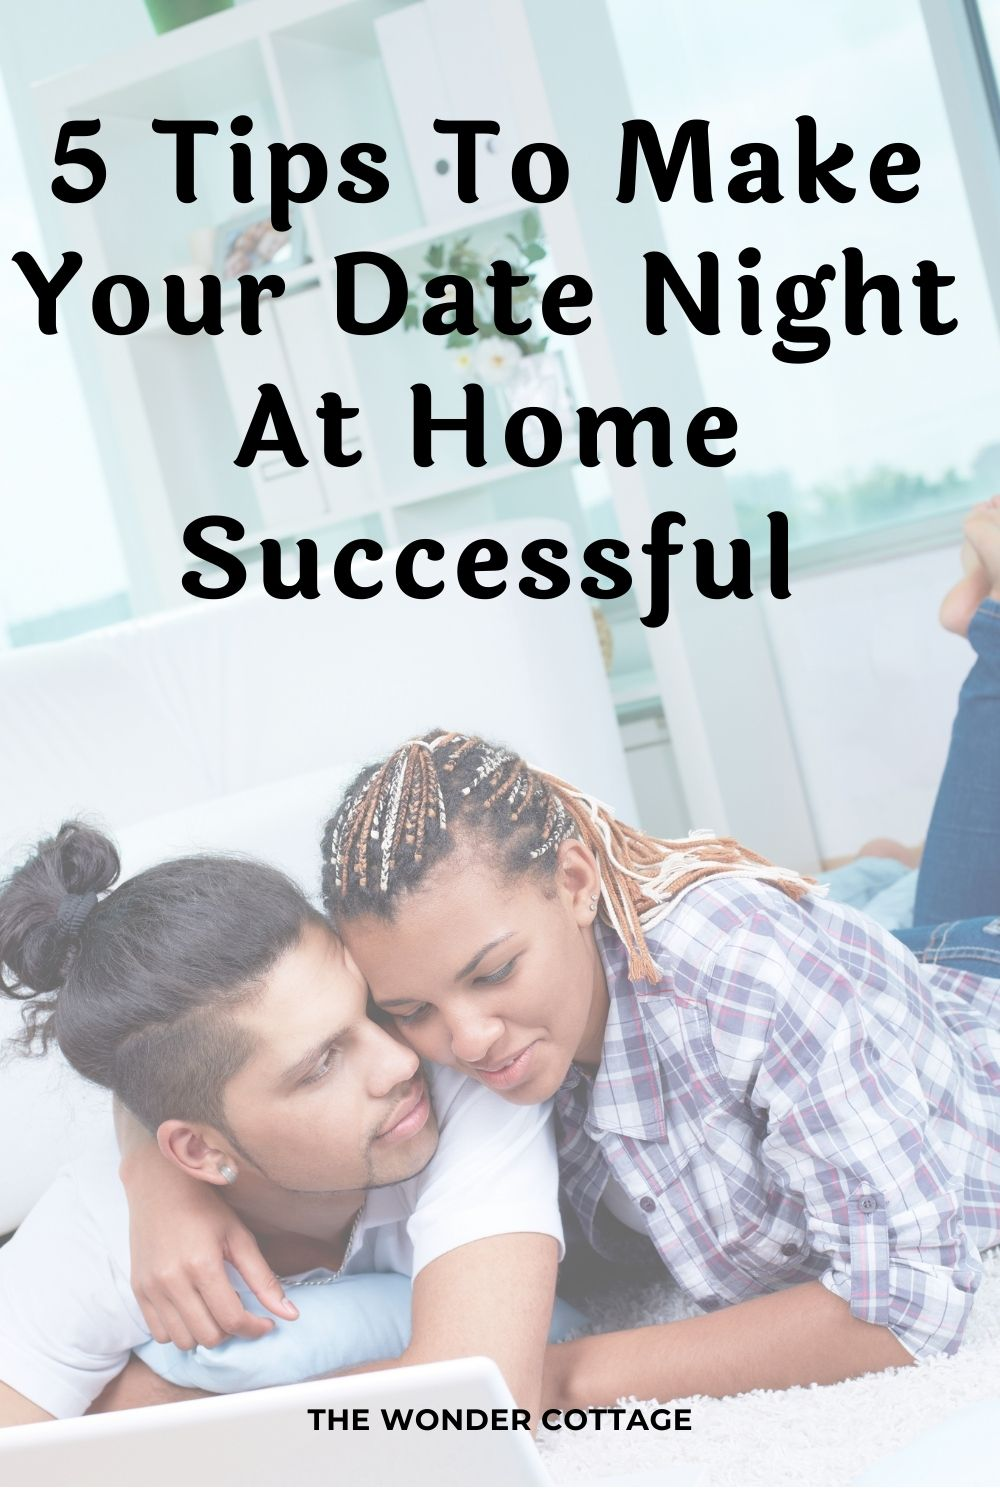 5 tips to make your date night at home successful